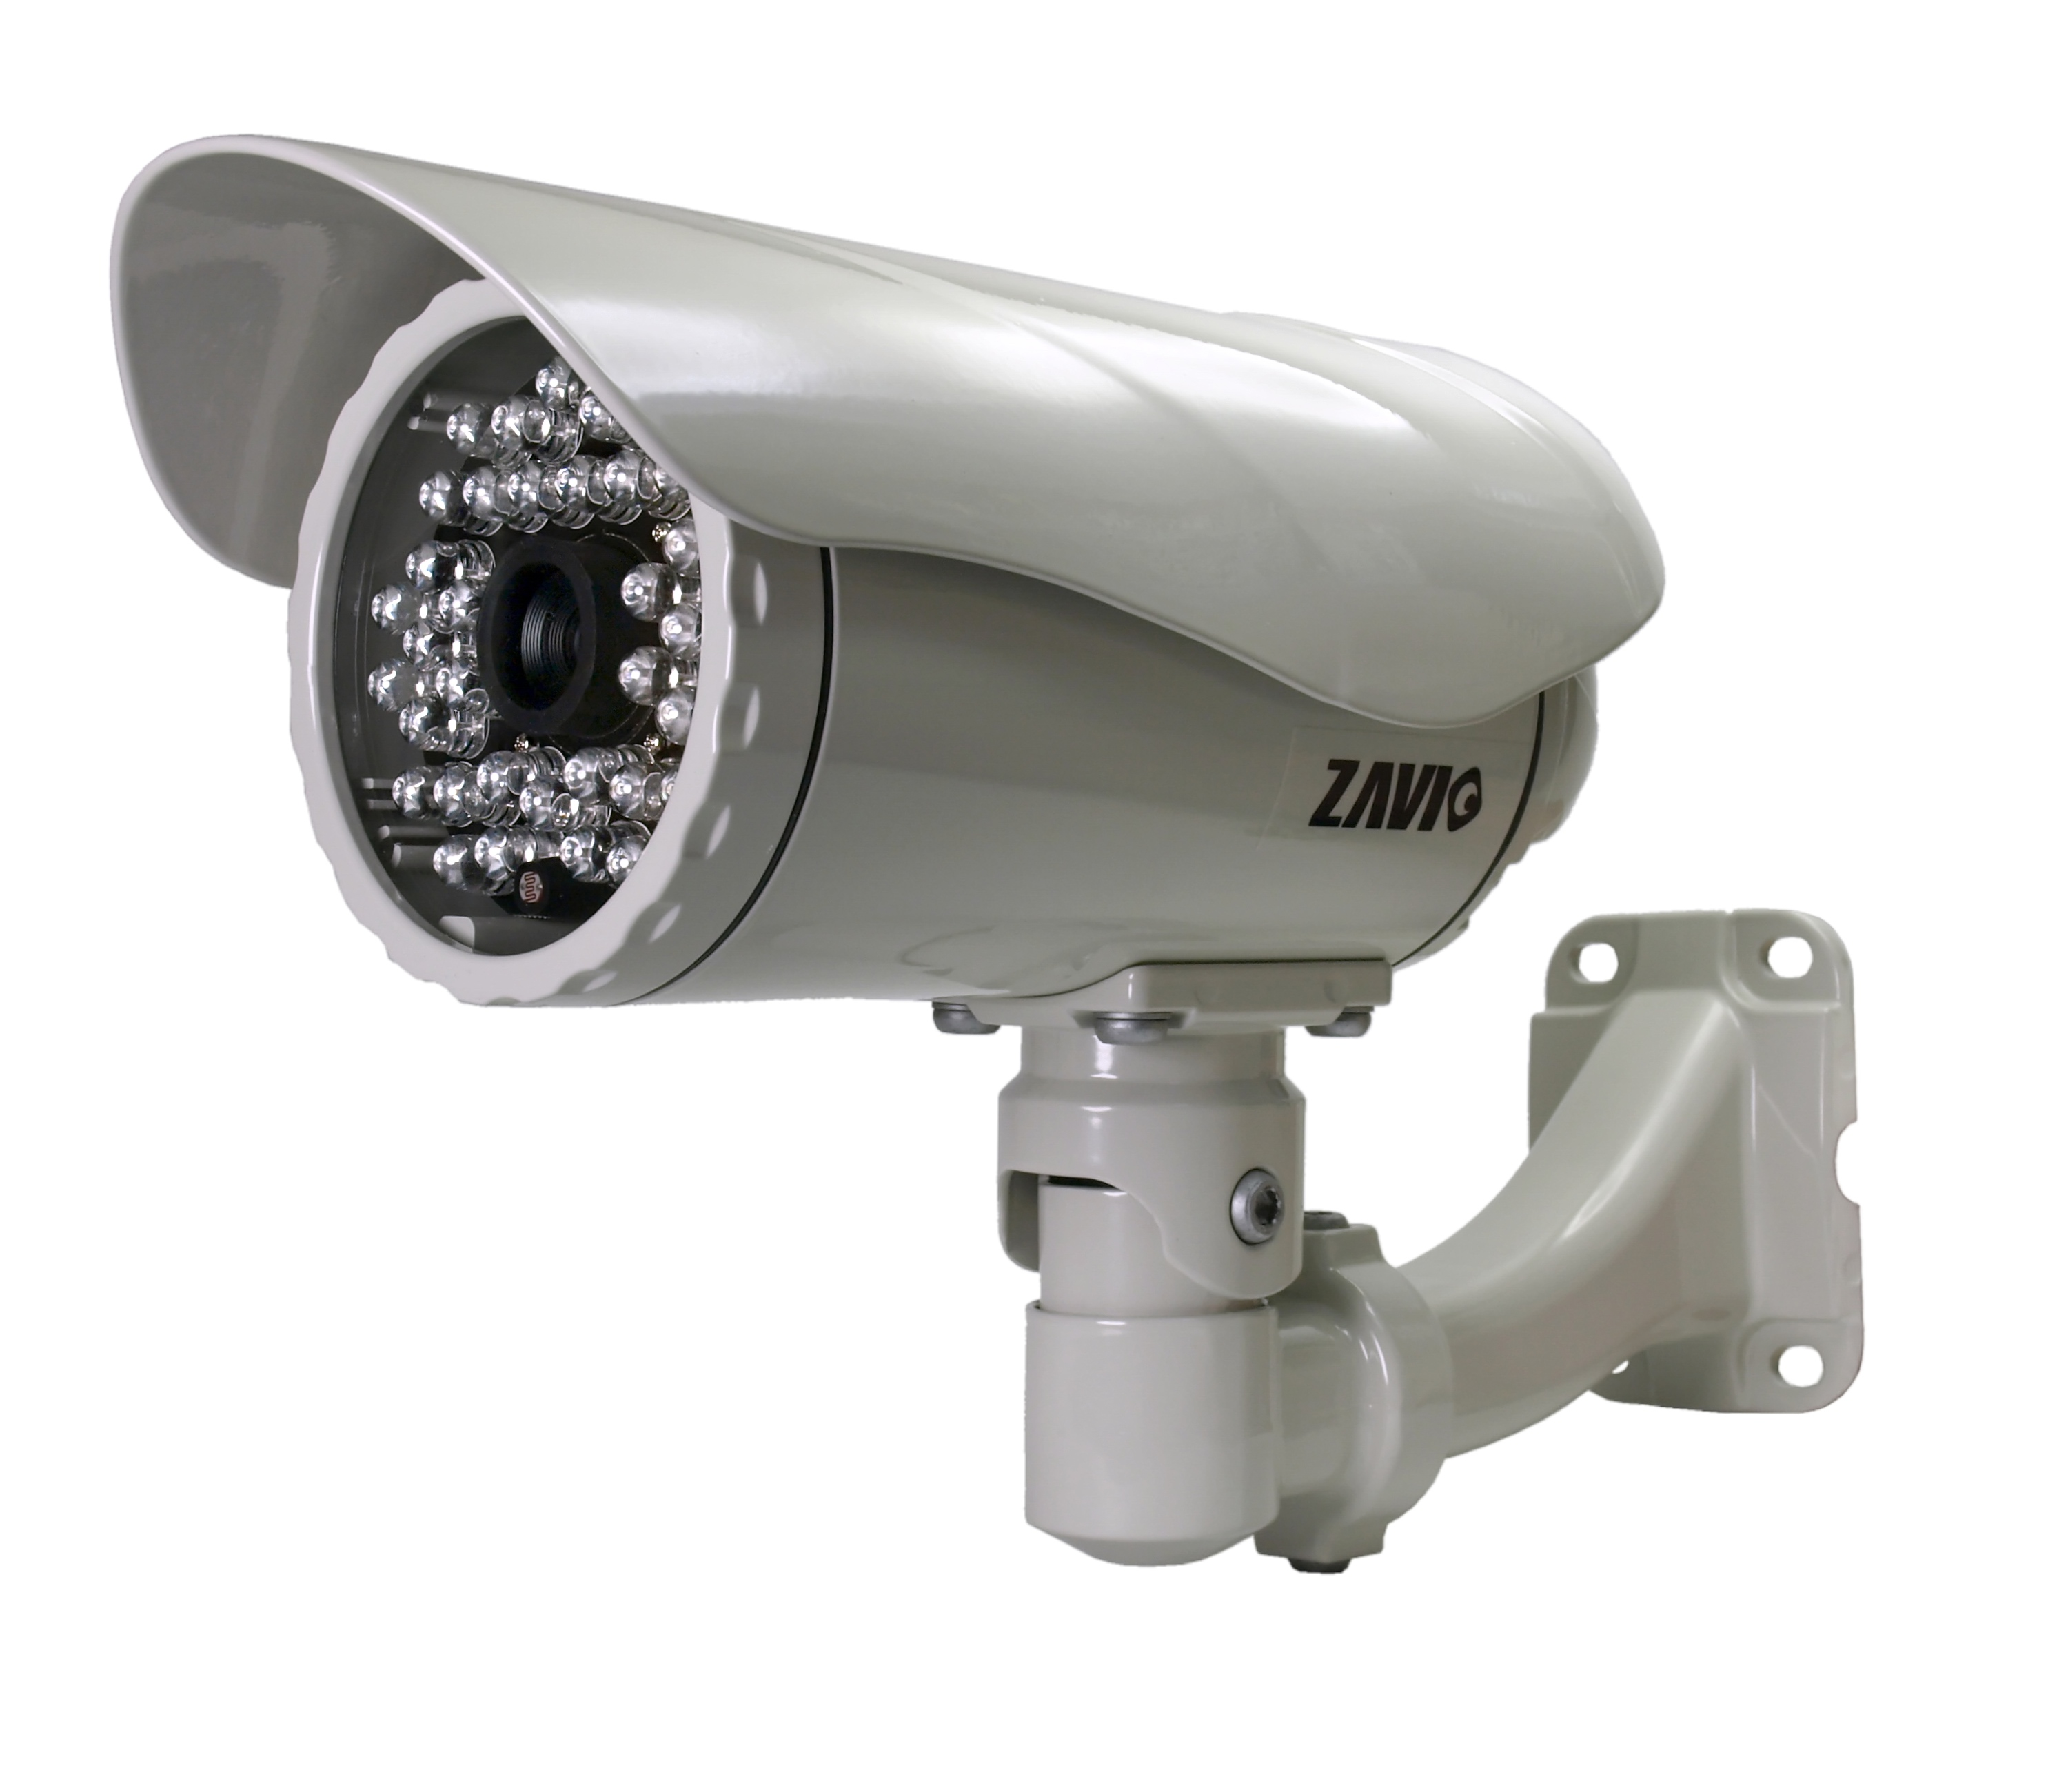 Camaras ip outdoor categor as de productos backnology for Camara ip exterior